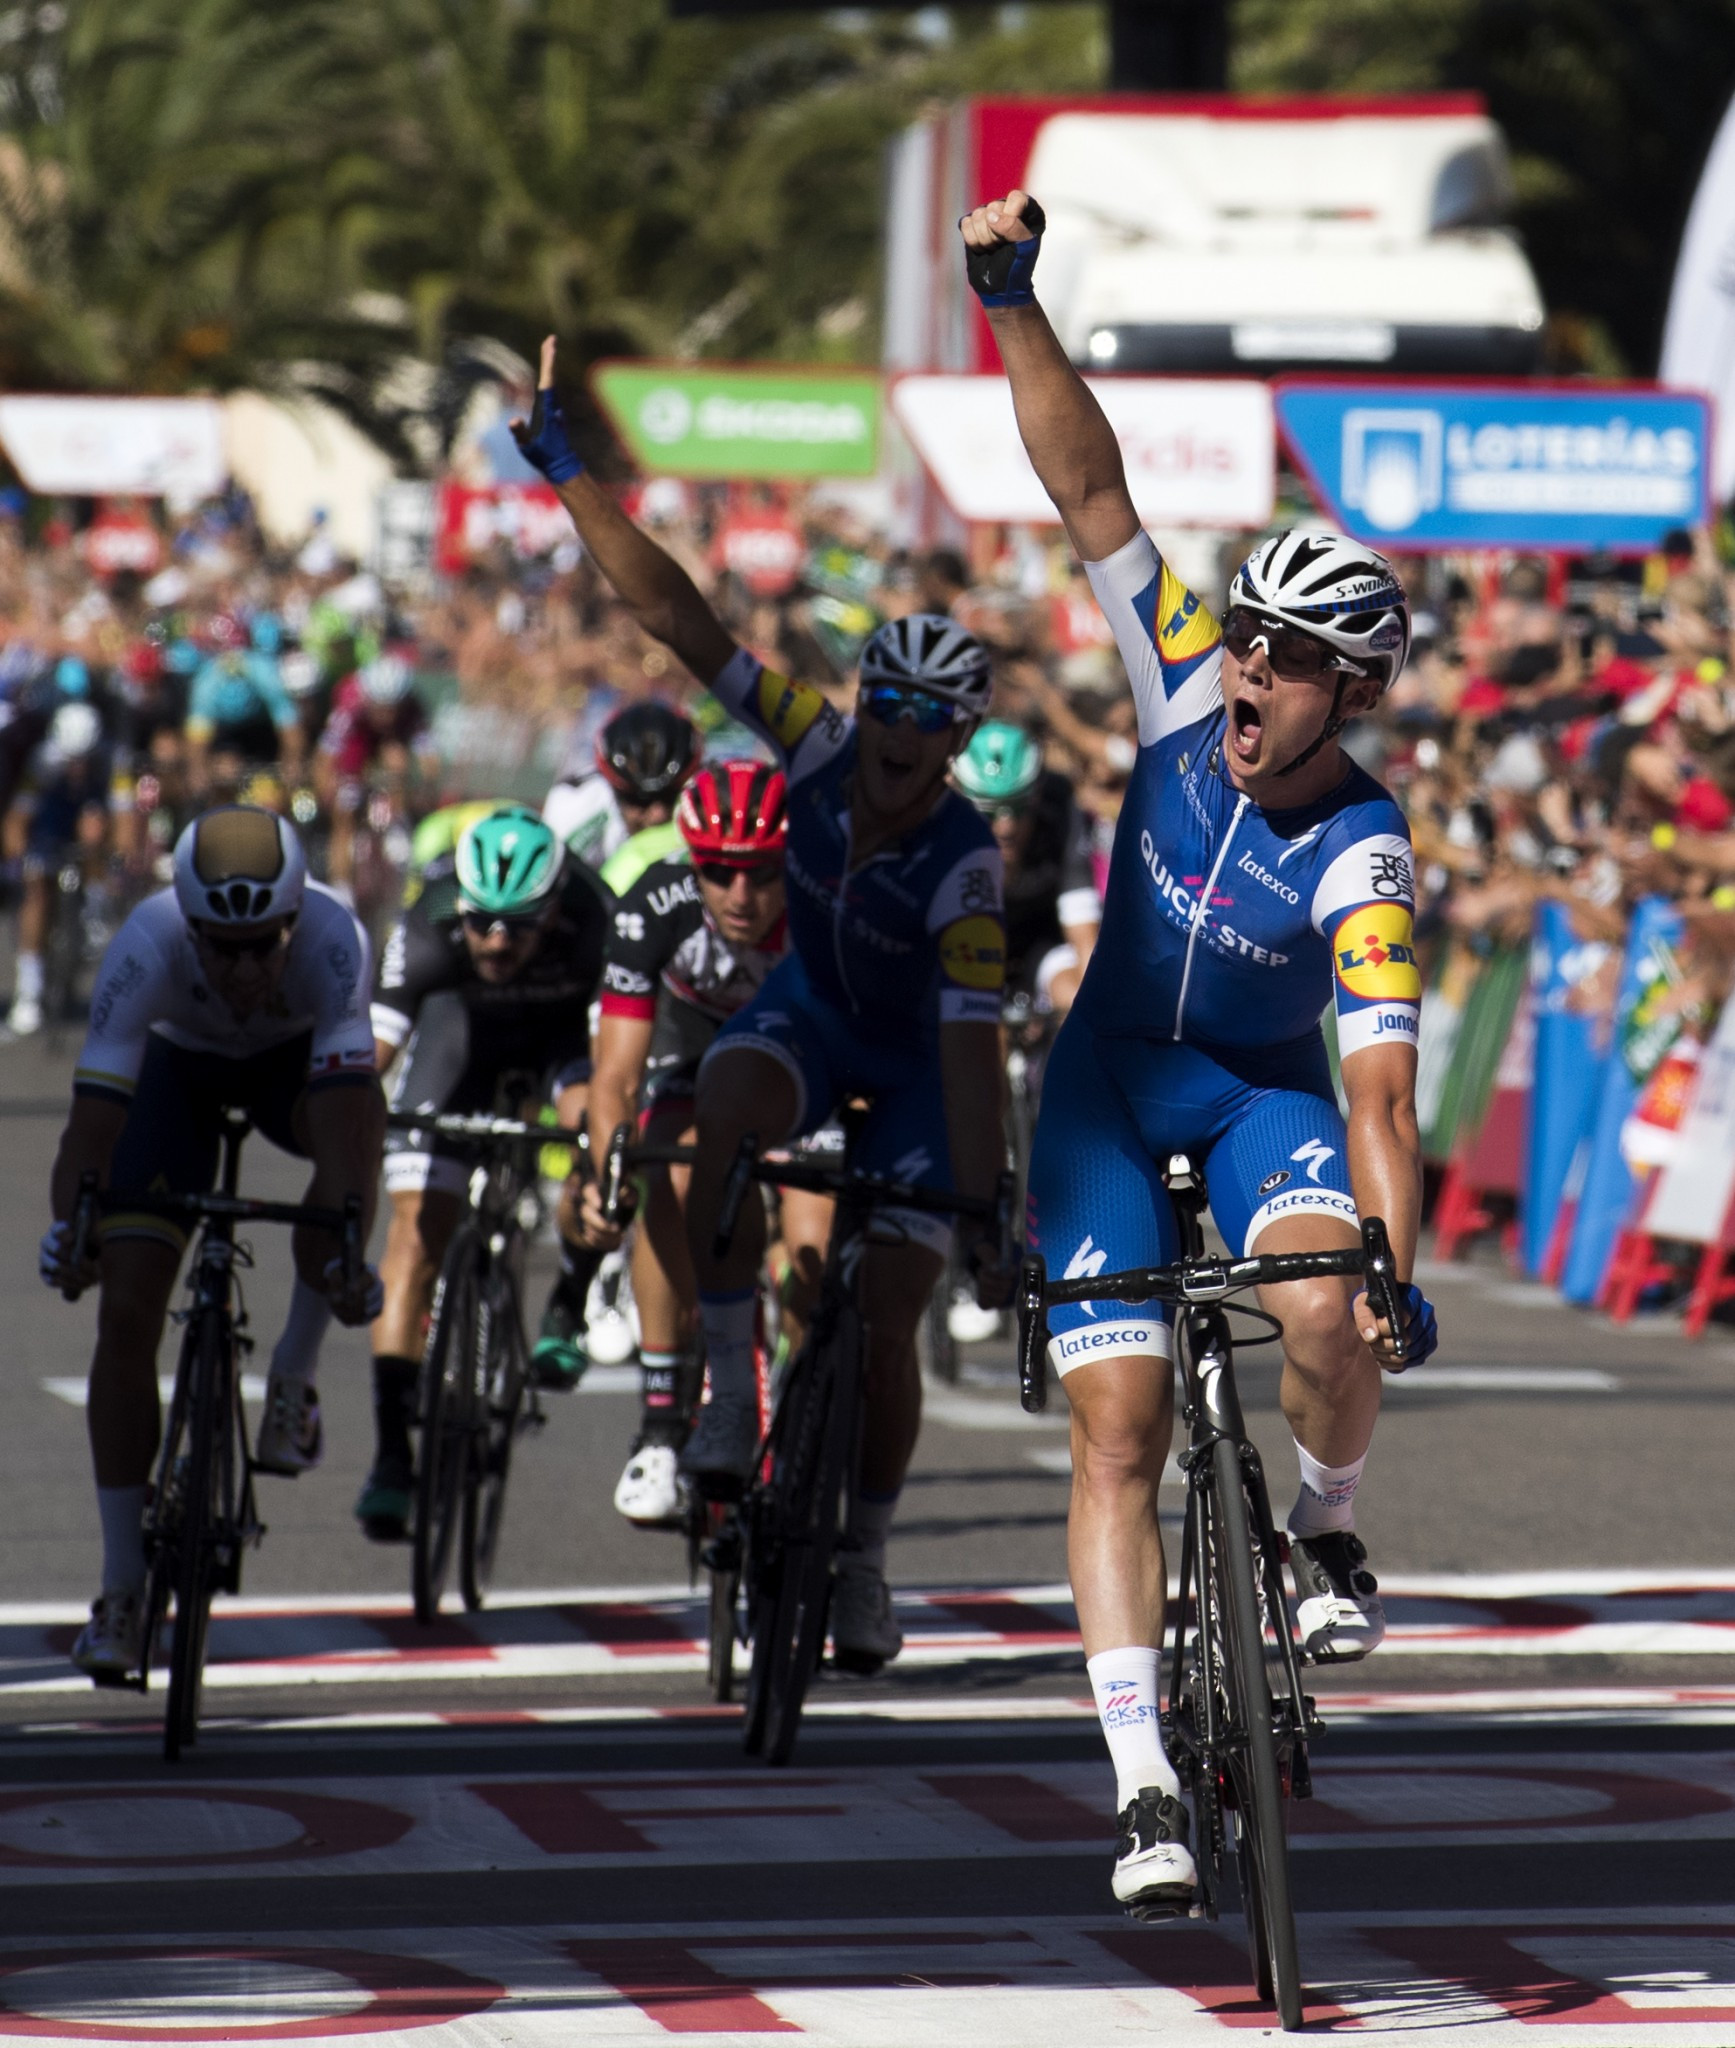 Belgium's Yves Lampaert celebrates as he crosses the line to win the second stage of the Vuelta a España today ©Getty Images